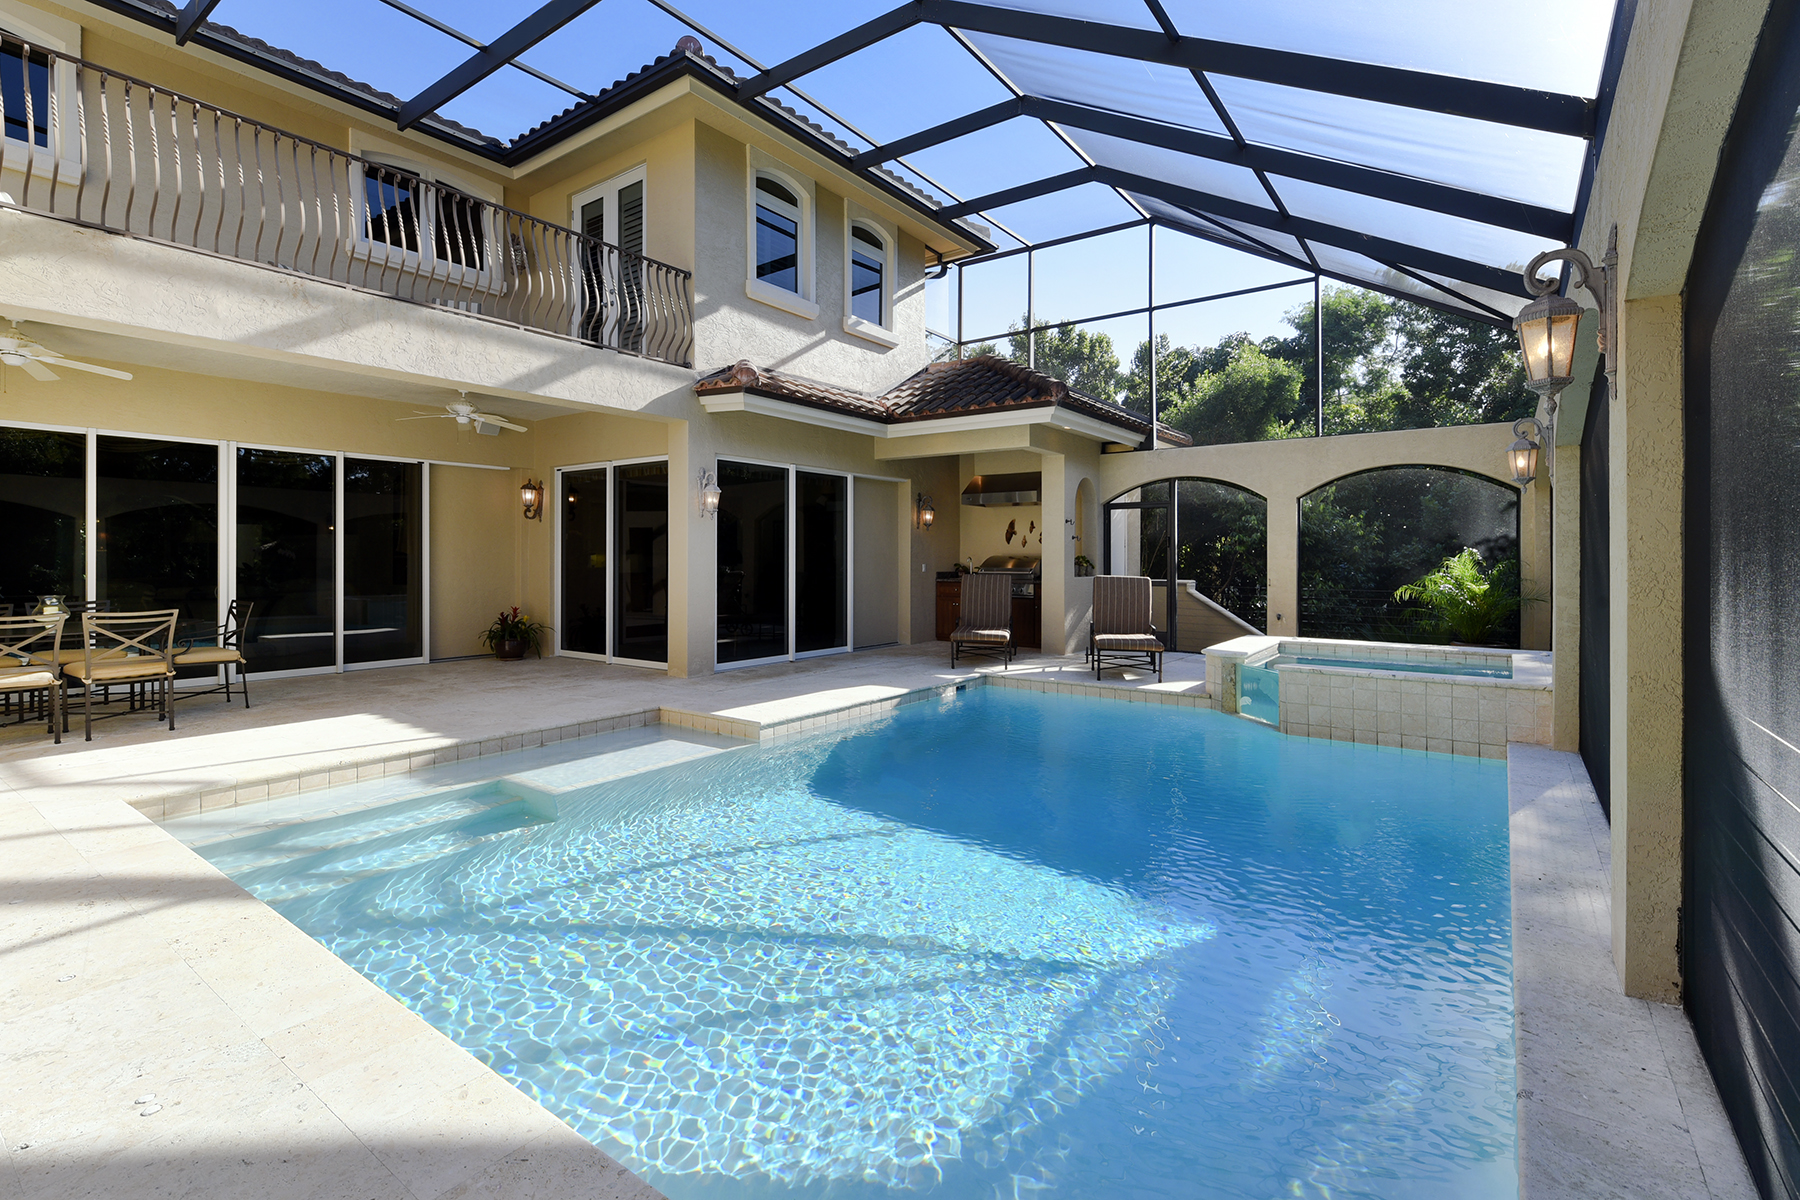 Additional photo for property listing at Elegant Lakefront Home at Ocean Reef 422 South Harbor Drive Key Largo, フロリダ 33037 アメリカ合衆国